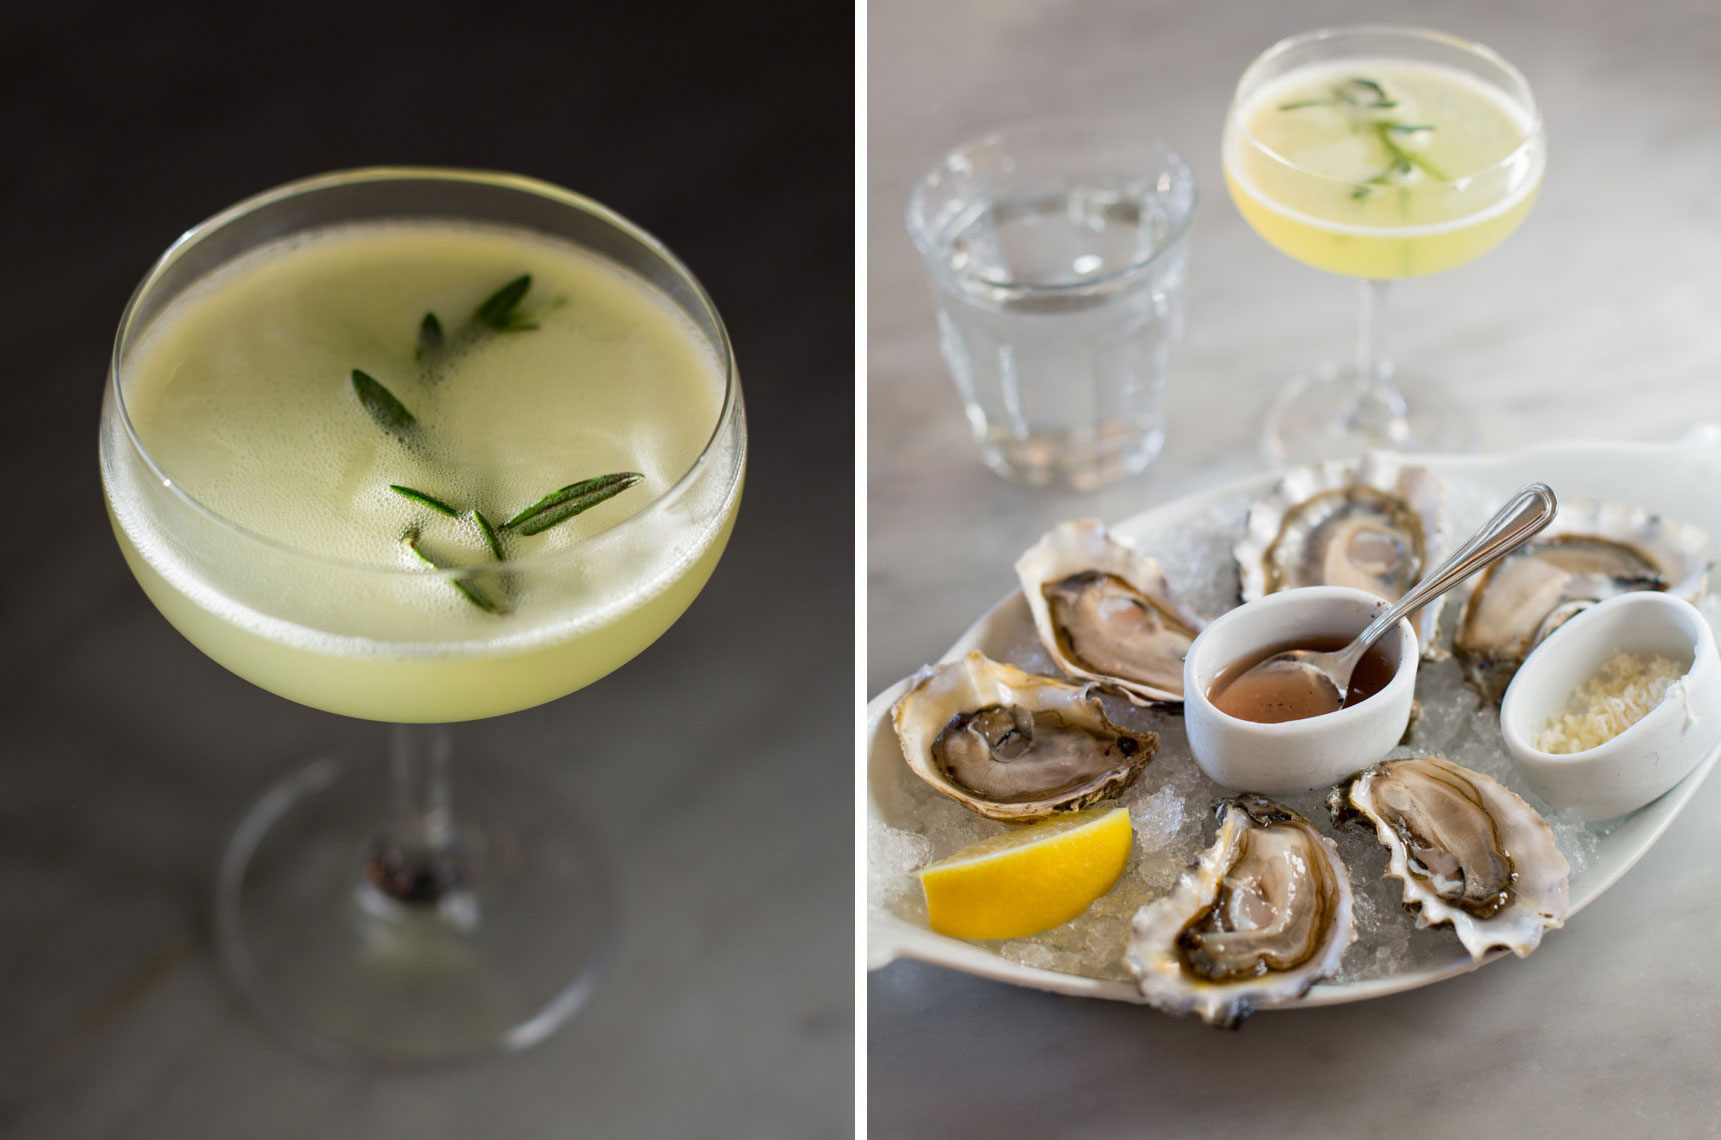 raw oysters and gin cocktail